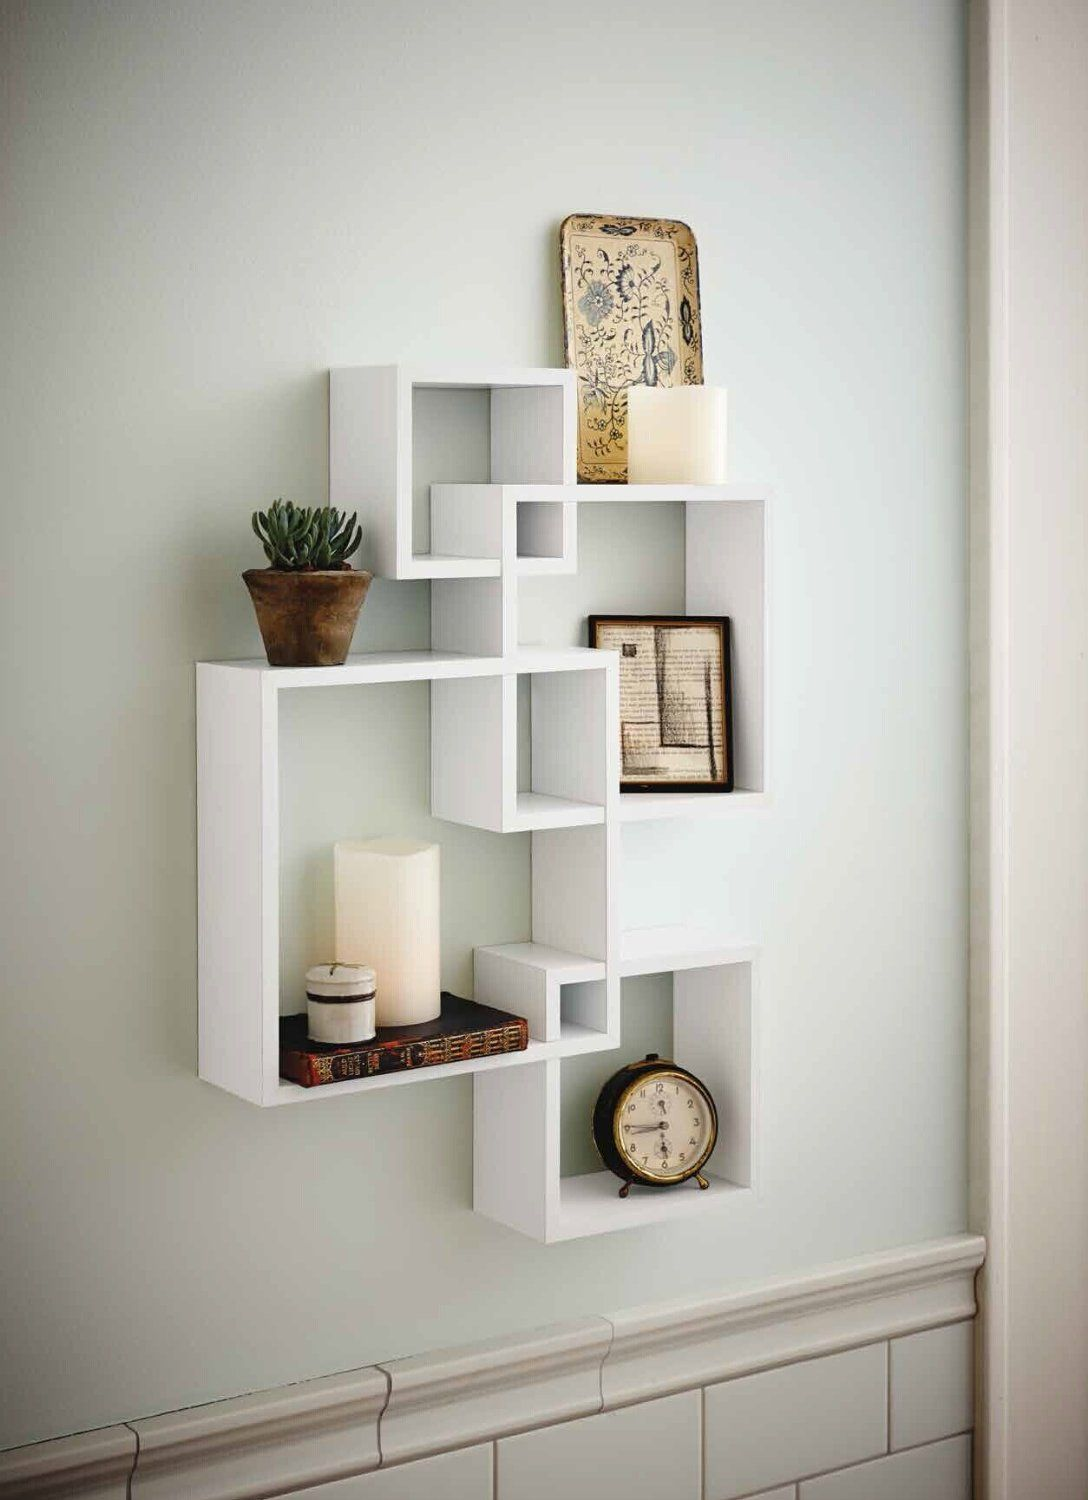 Wall Shelf Design Amazon Generic Intersecting Squares Wall Shelf Decorative